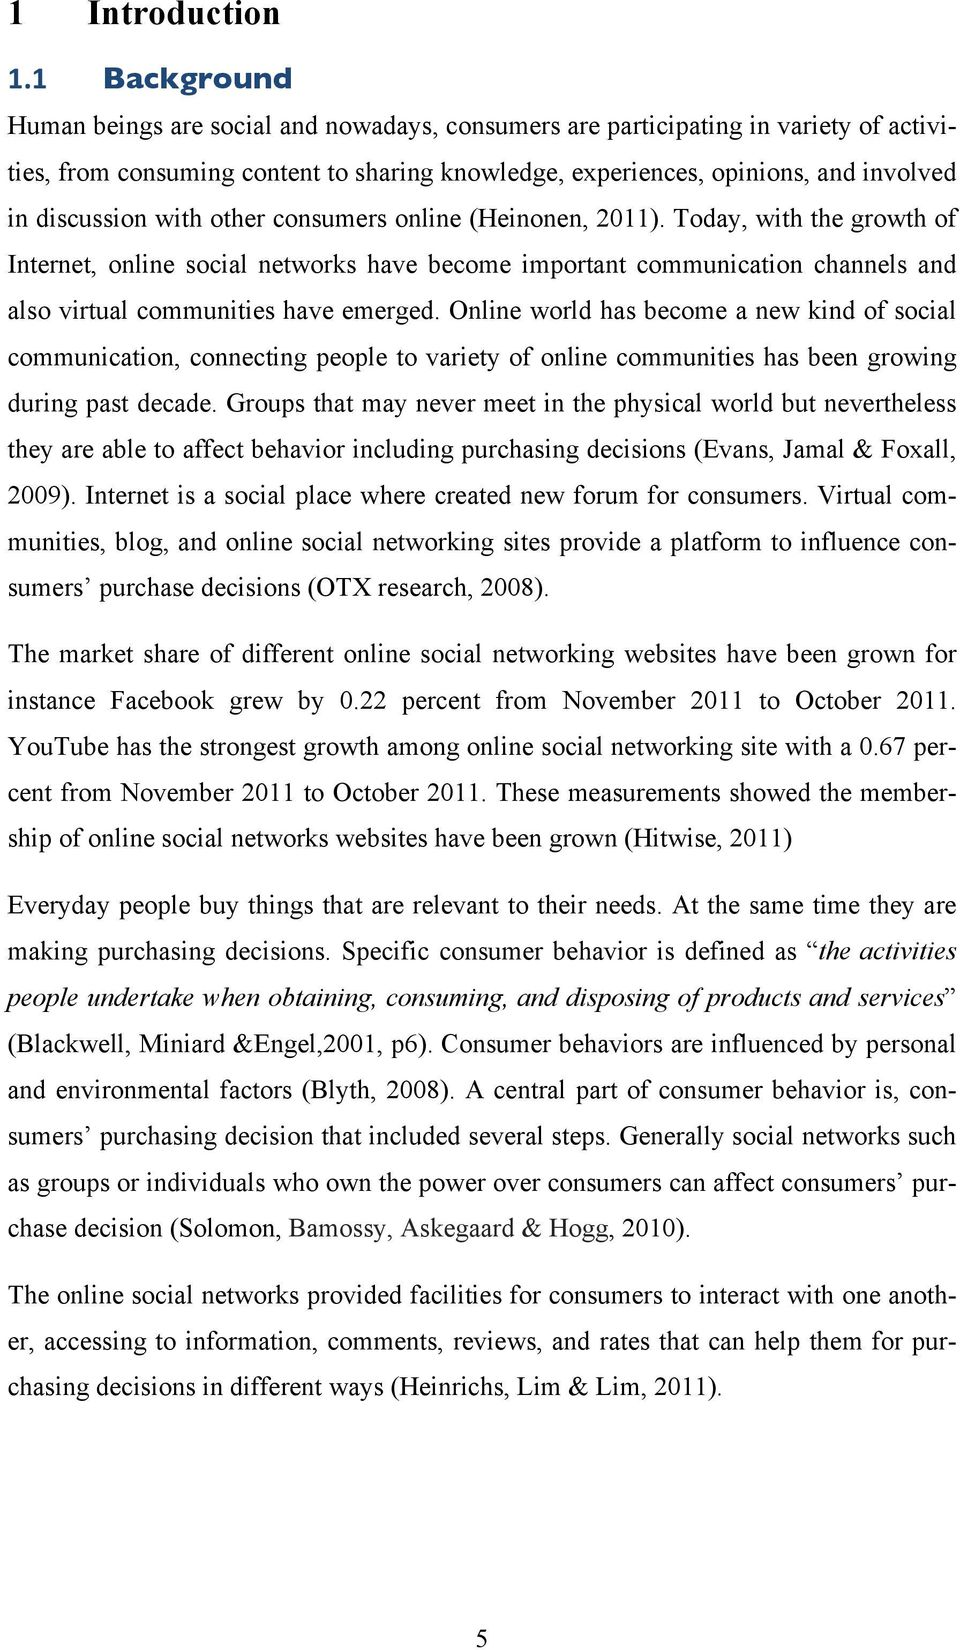 with other consumers online (Heinonen, 2011). Today, with the growth of Internet, online social networks have become important communication channels and also virtual communities have emerged.